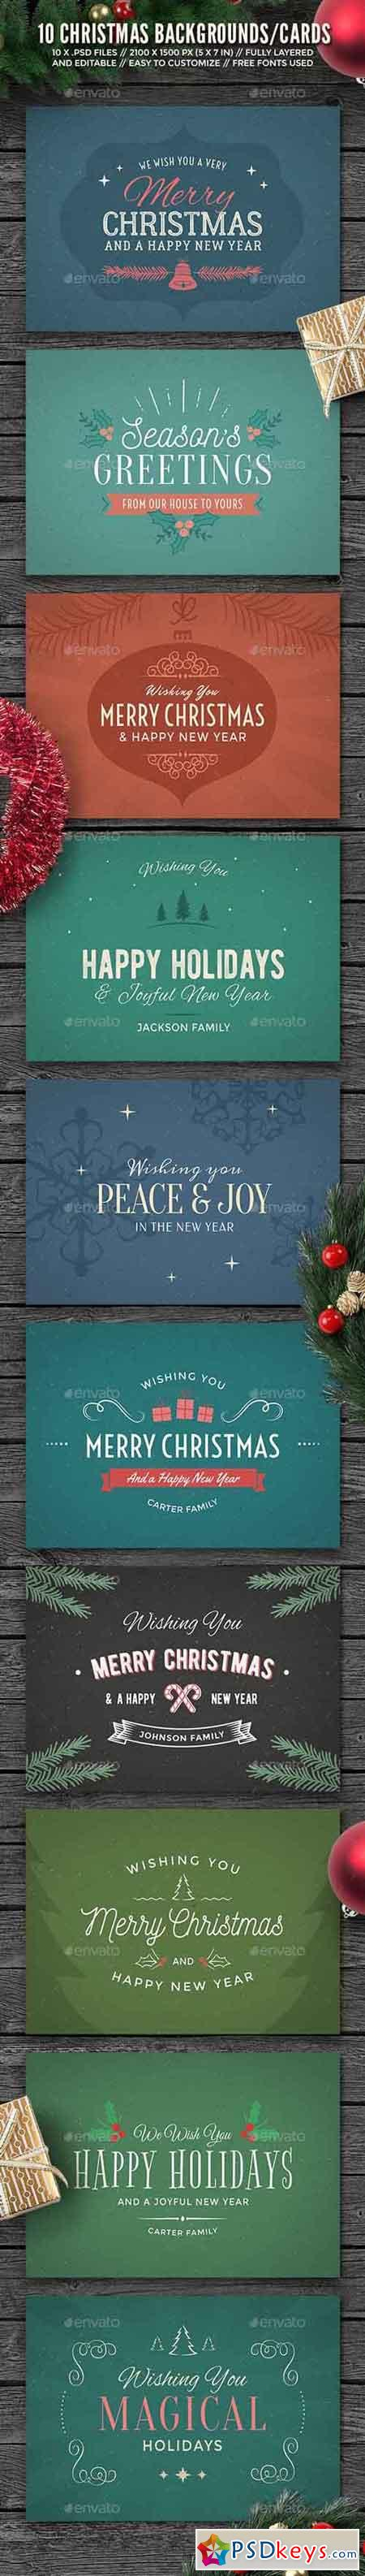 10 Christmas Backgrounds Cards 13905872